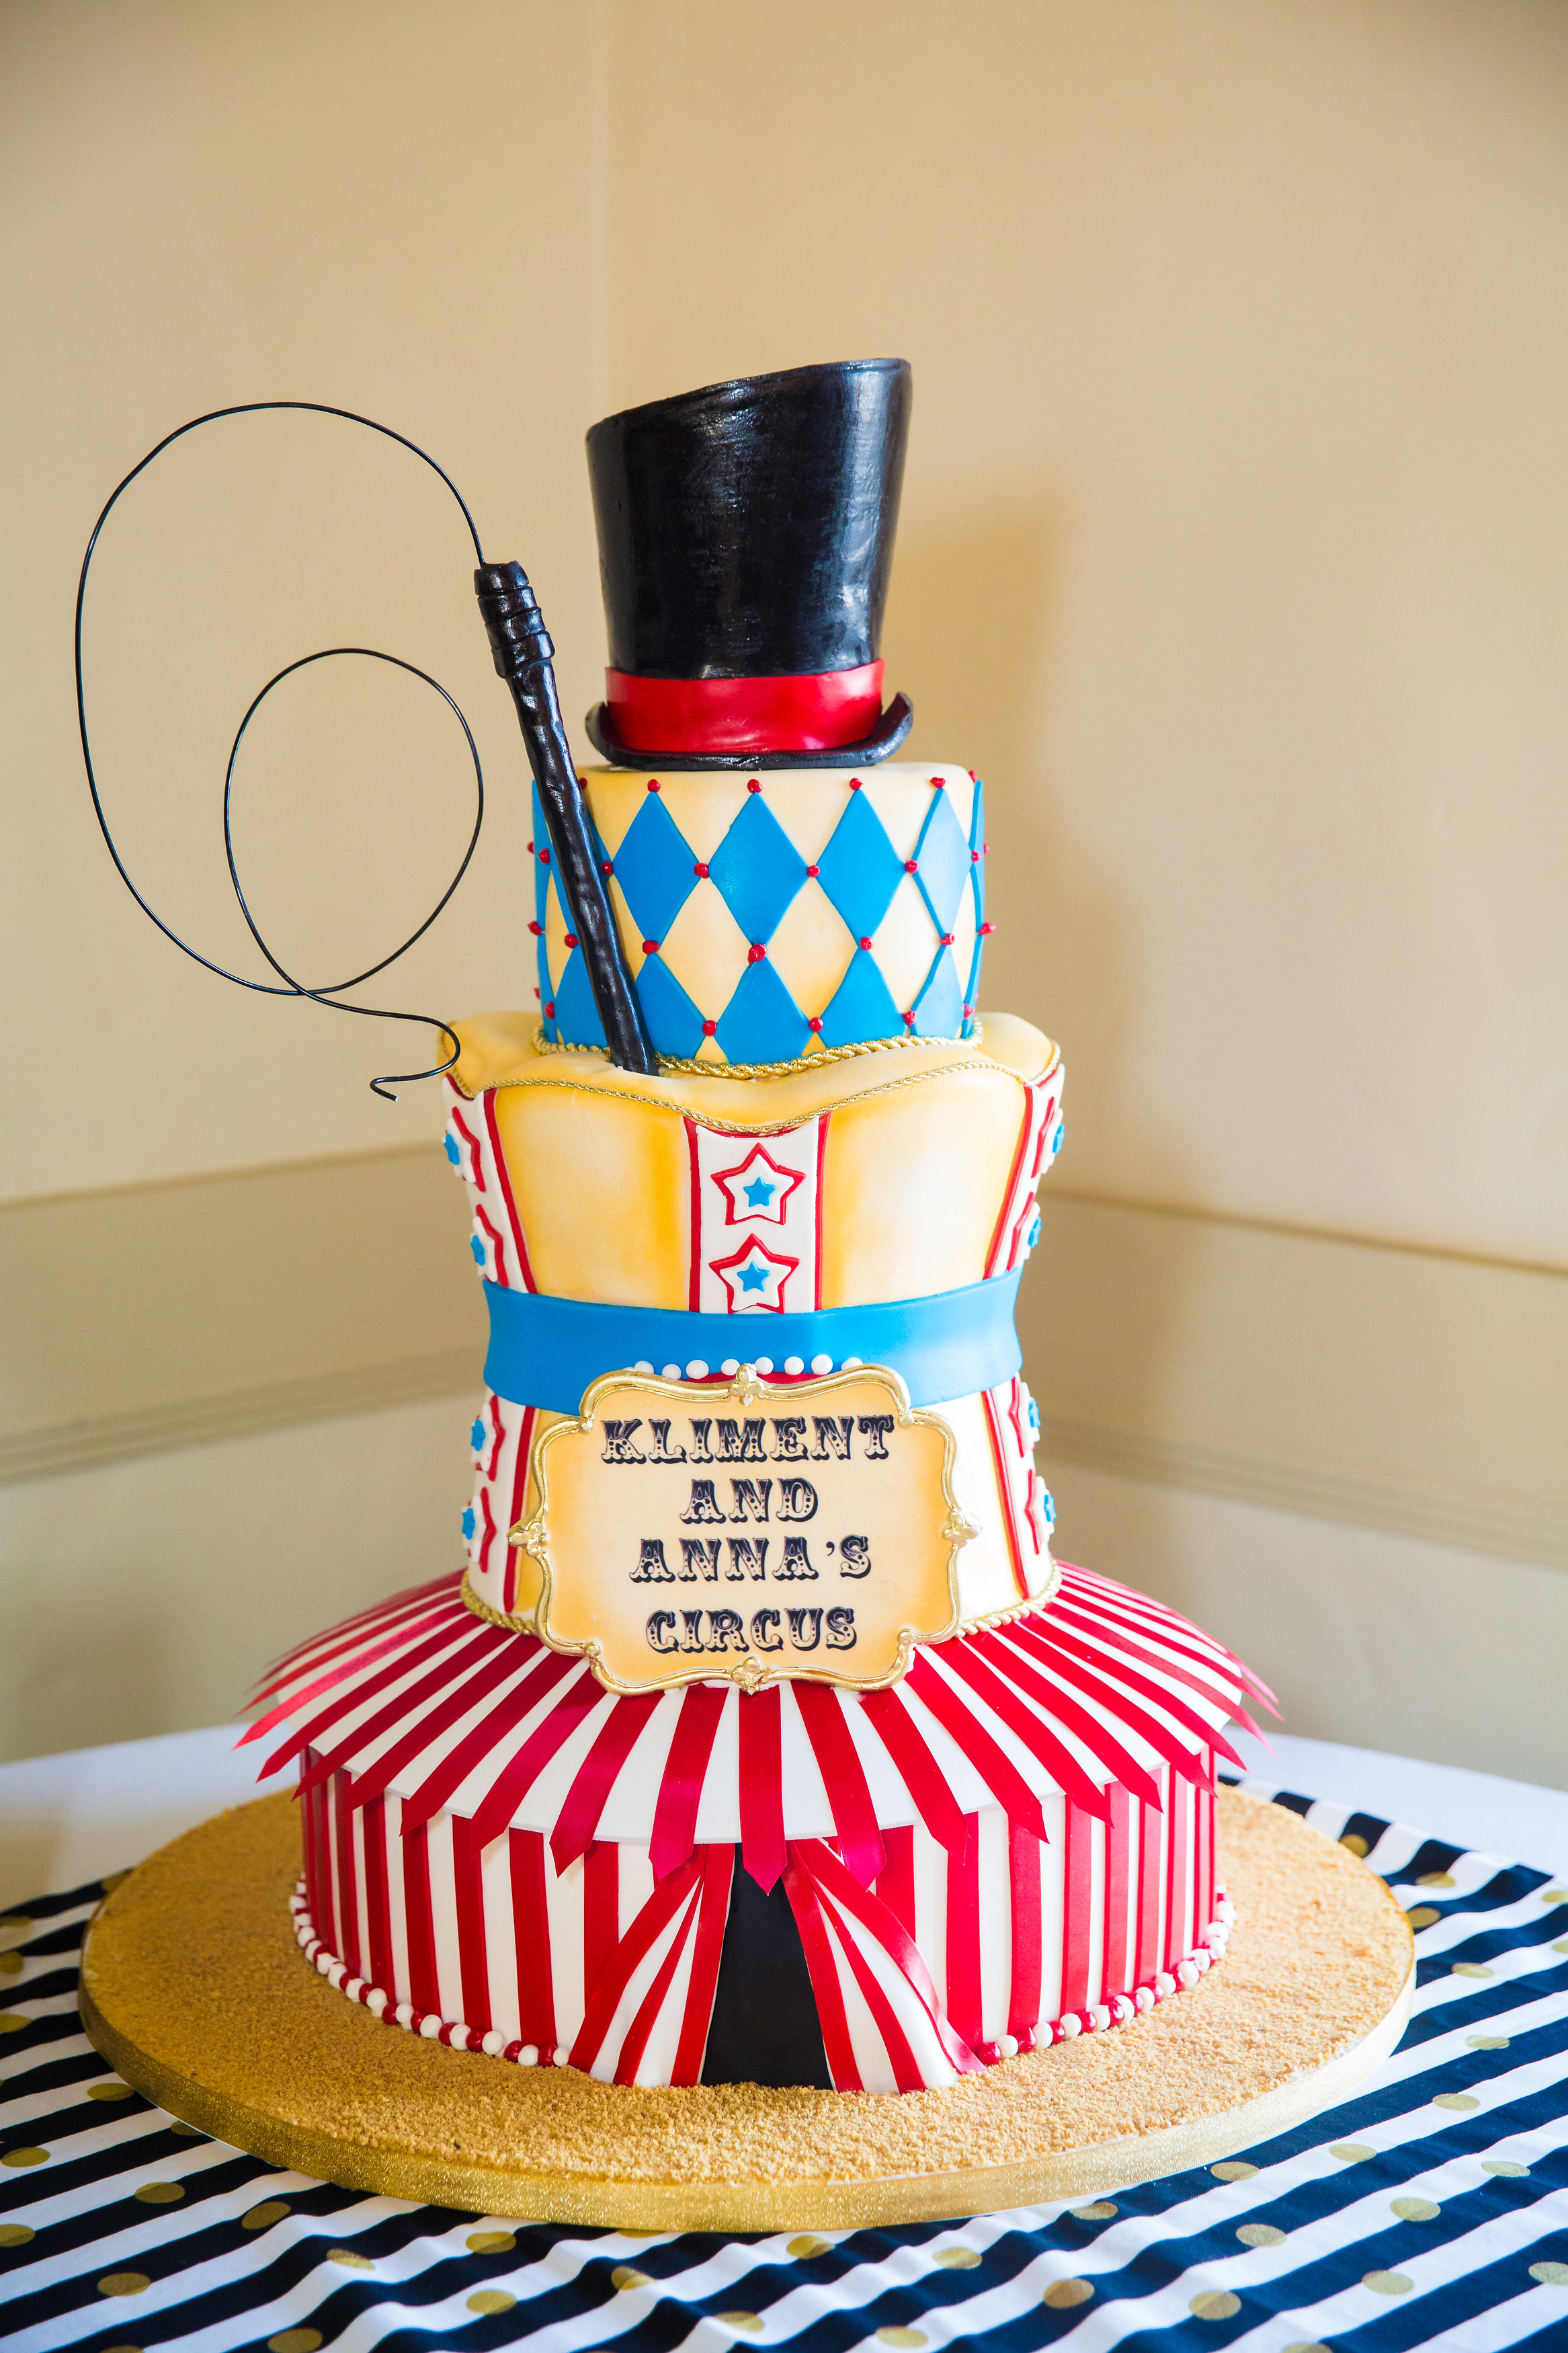 Cake by  Rossmoor Pastries